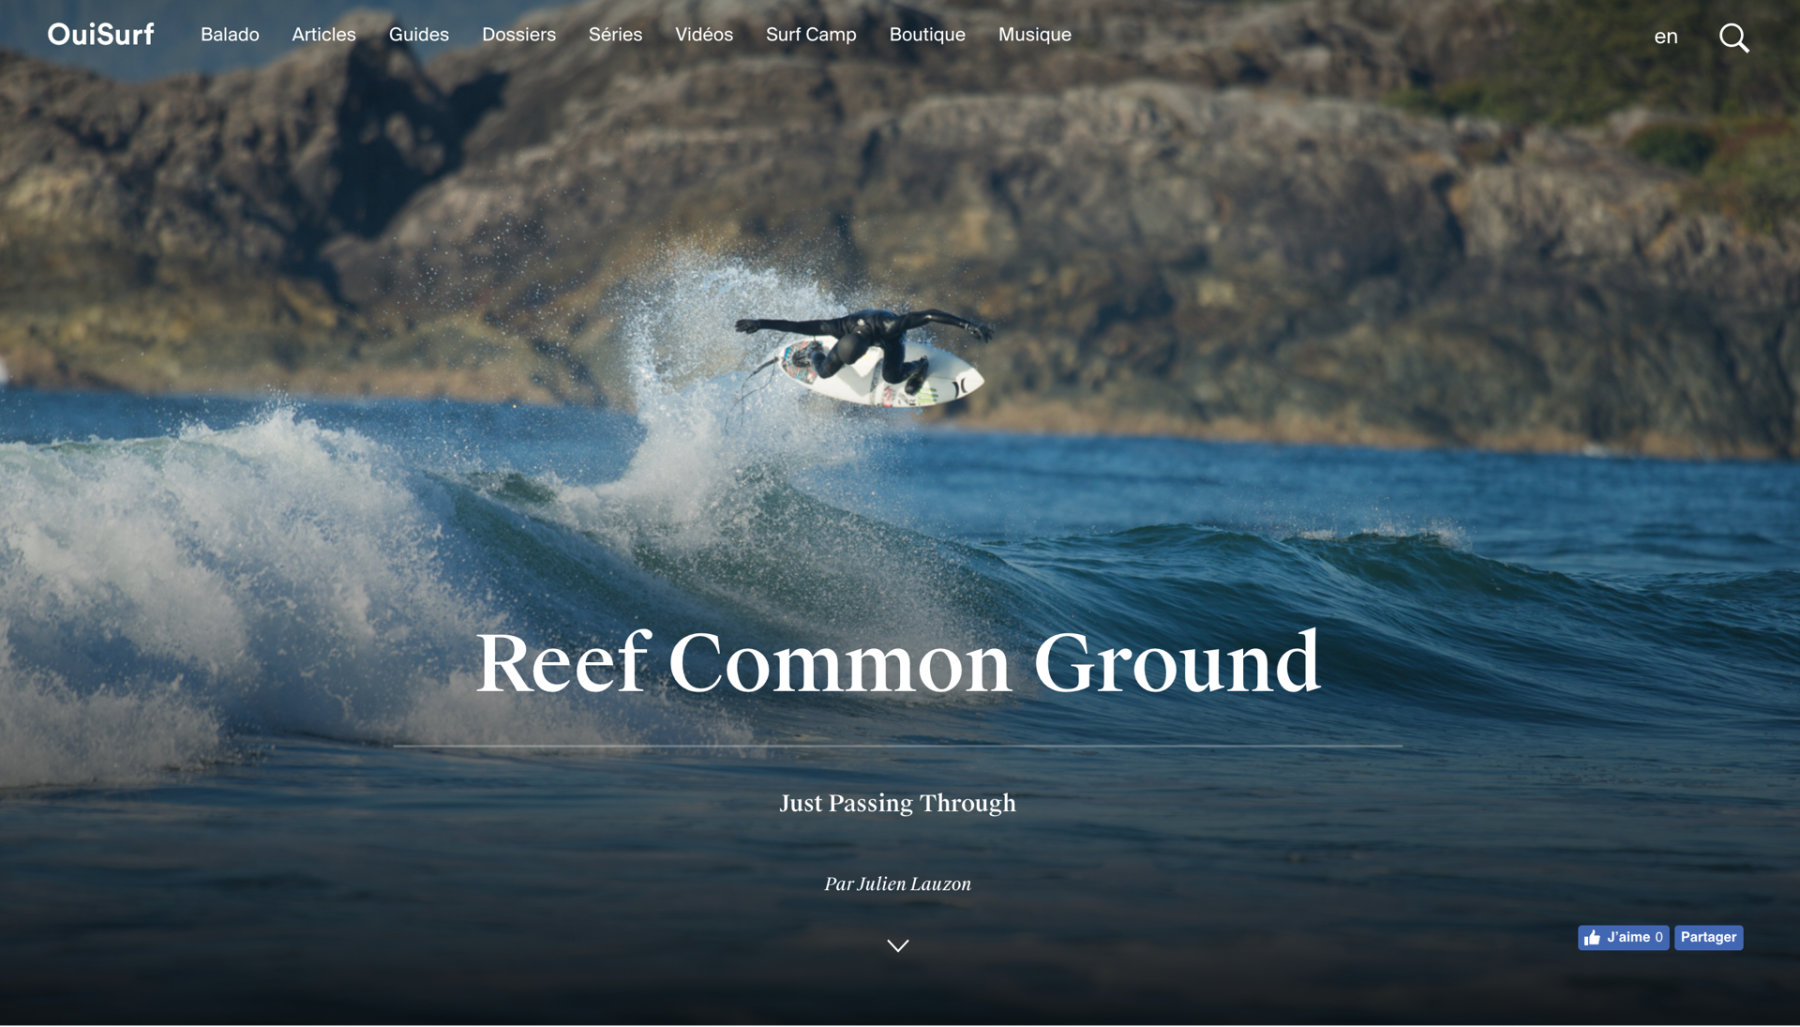 MILL3 mockups for OuiSurf longform section displaying surf air tricks in Reef Canada movie Common Ground